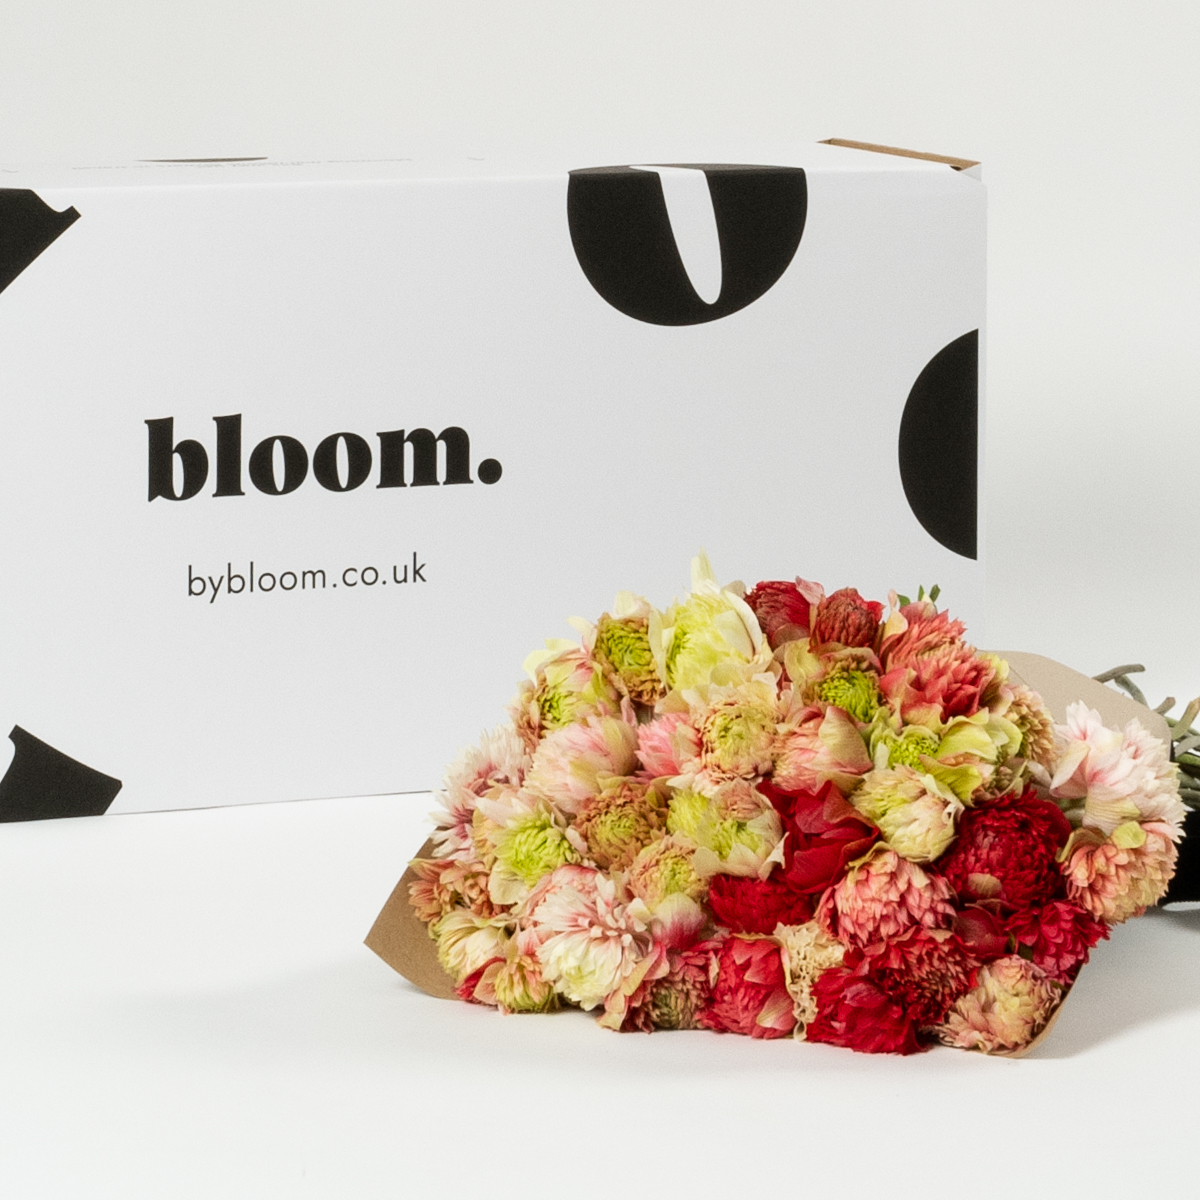 Bloom Flower Delivery | Bi-Colour Full Star Anemones